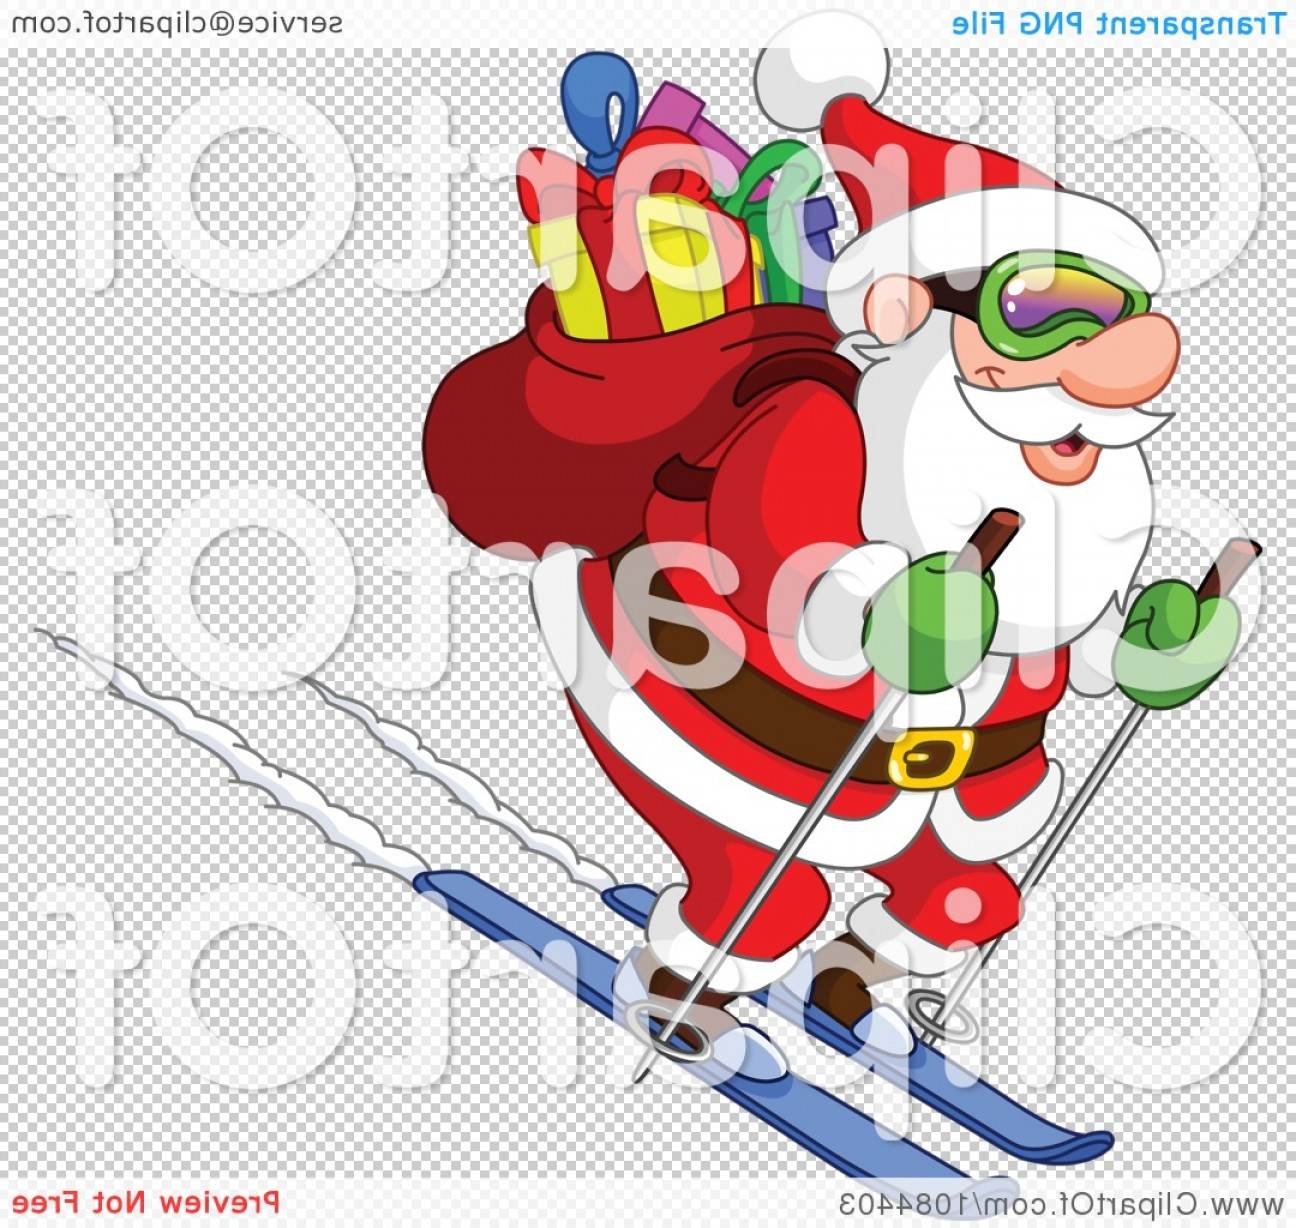 Transparent PNG Vector Skier: Santa Skiing Downhill With His Sack Of Gifts